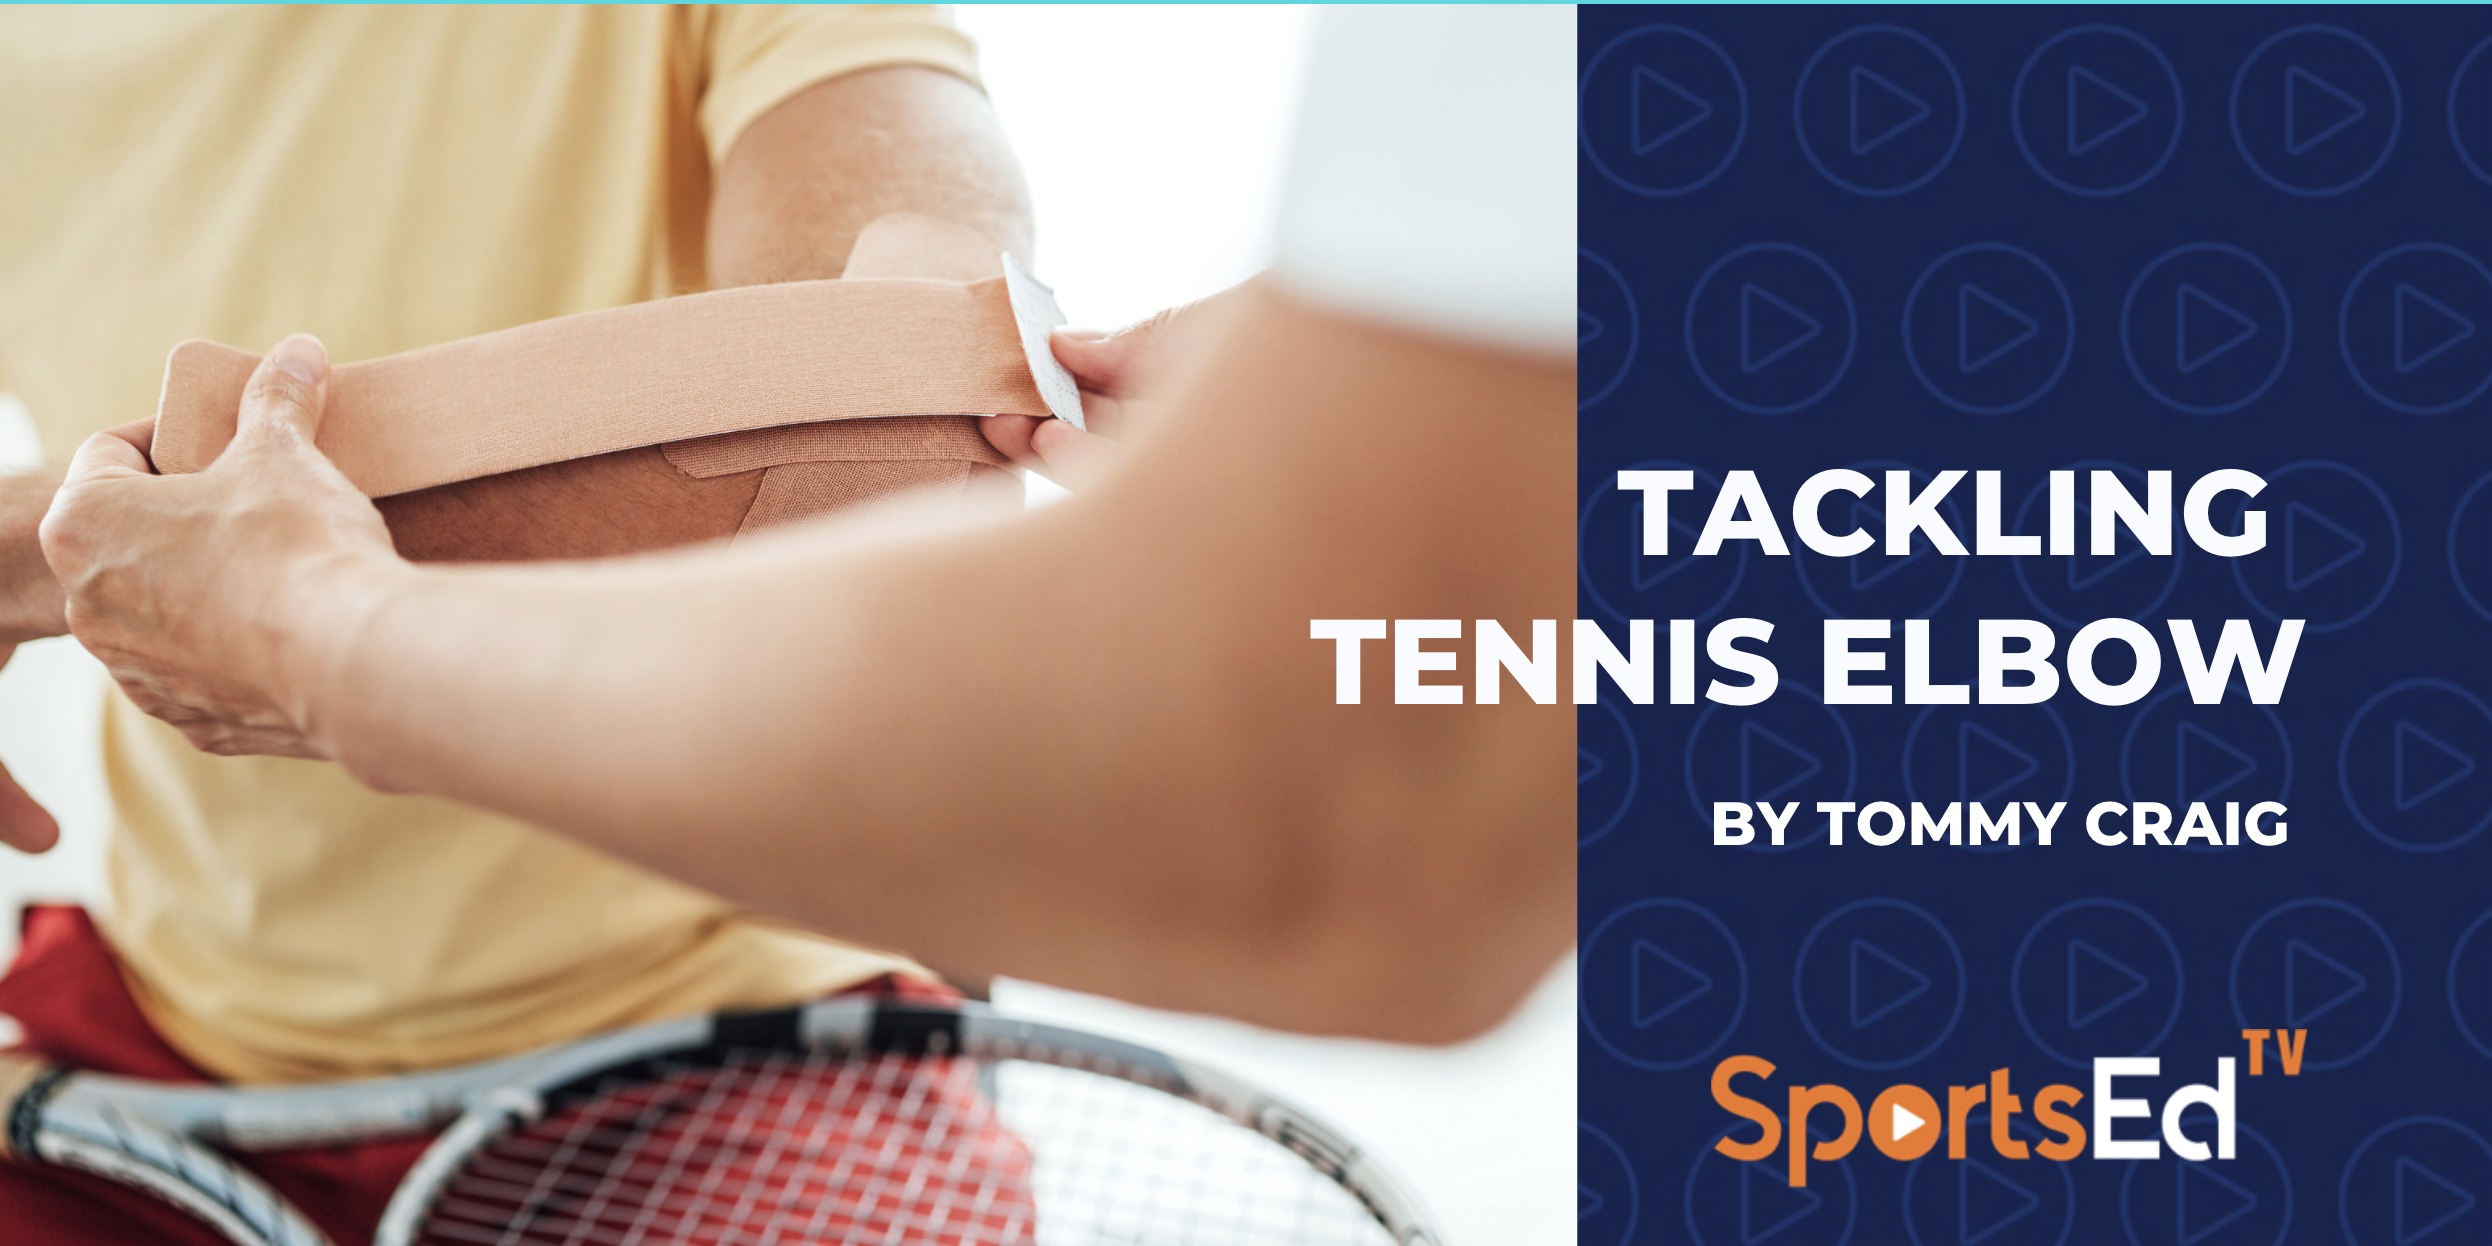 Tackling Tennis Elbow